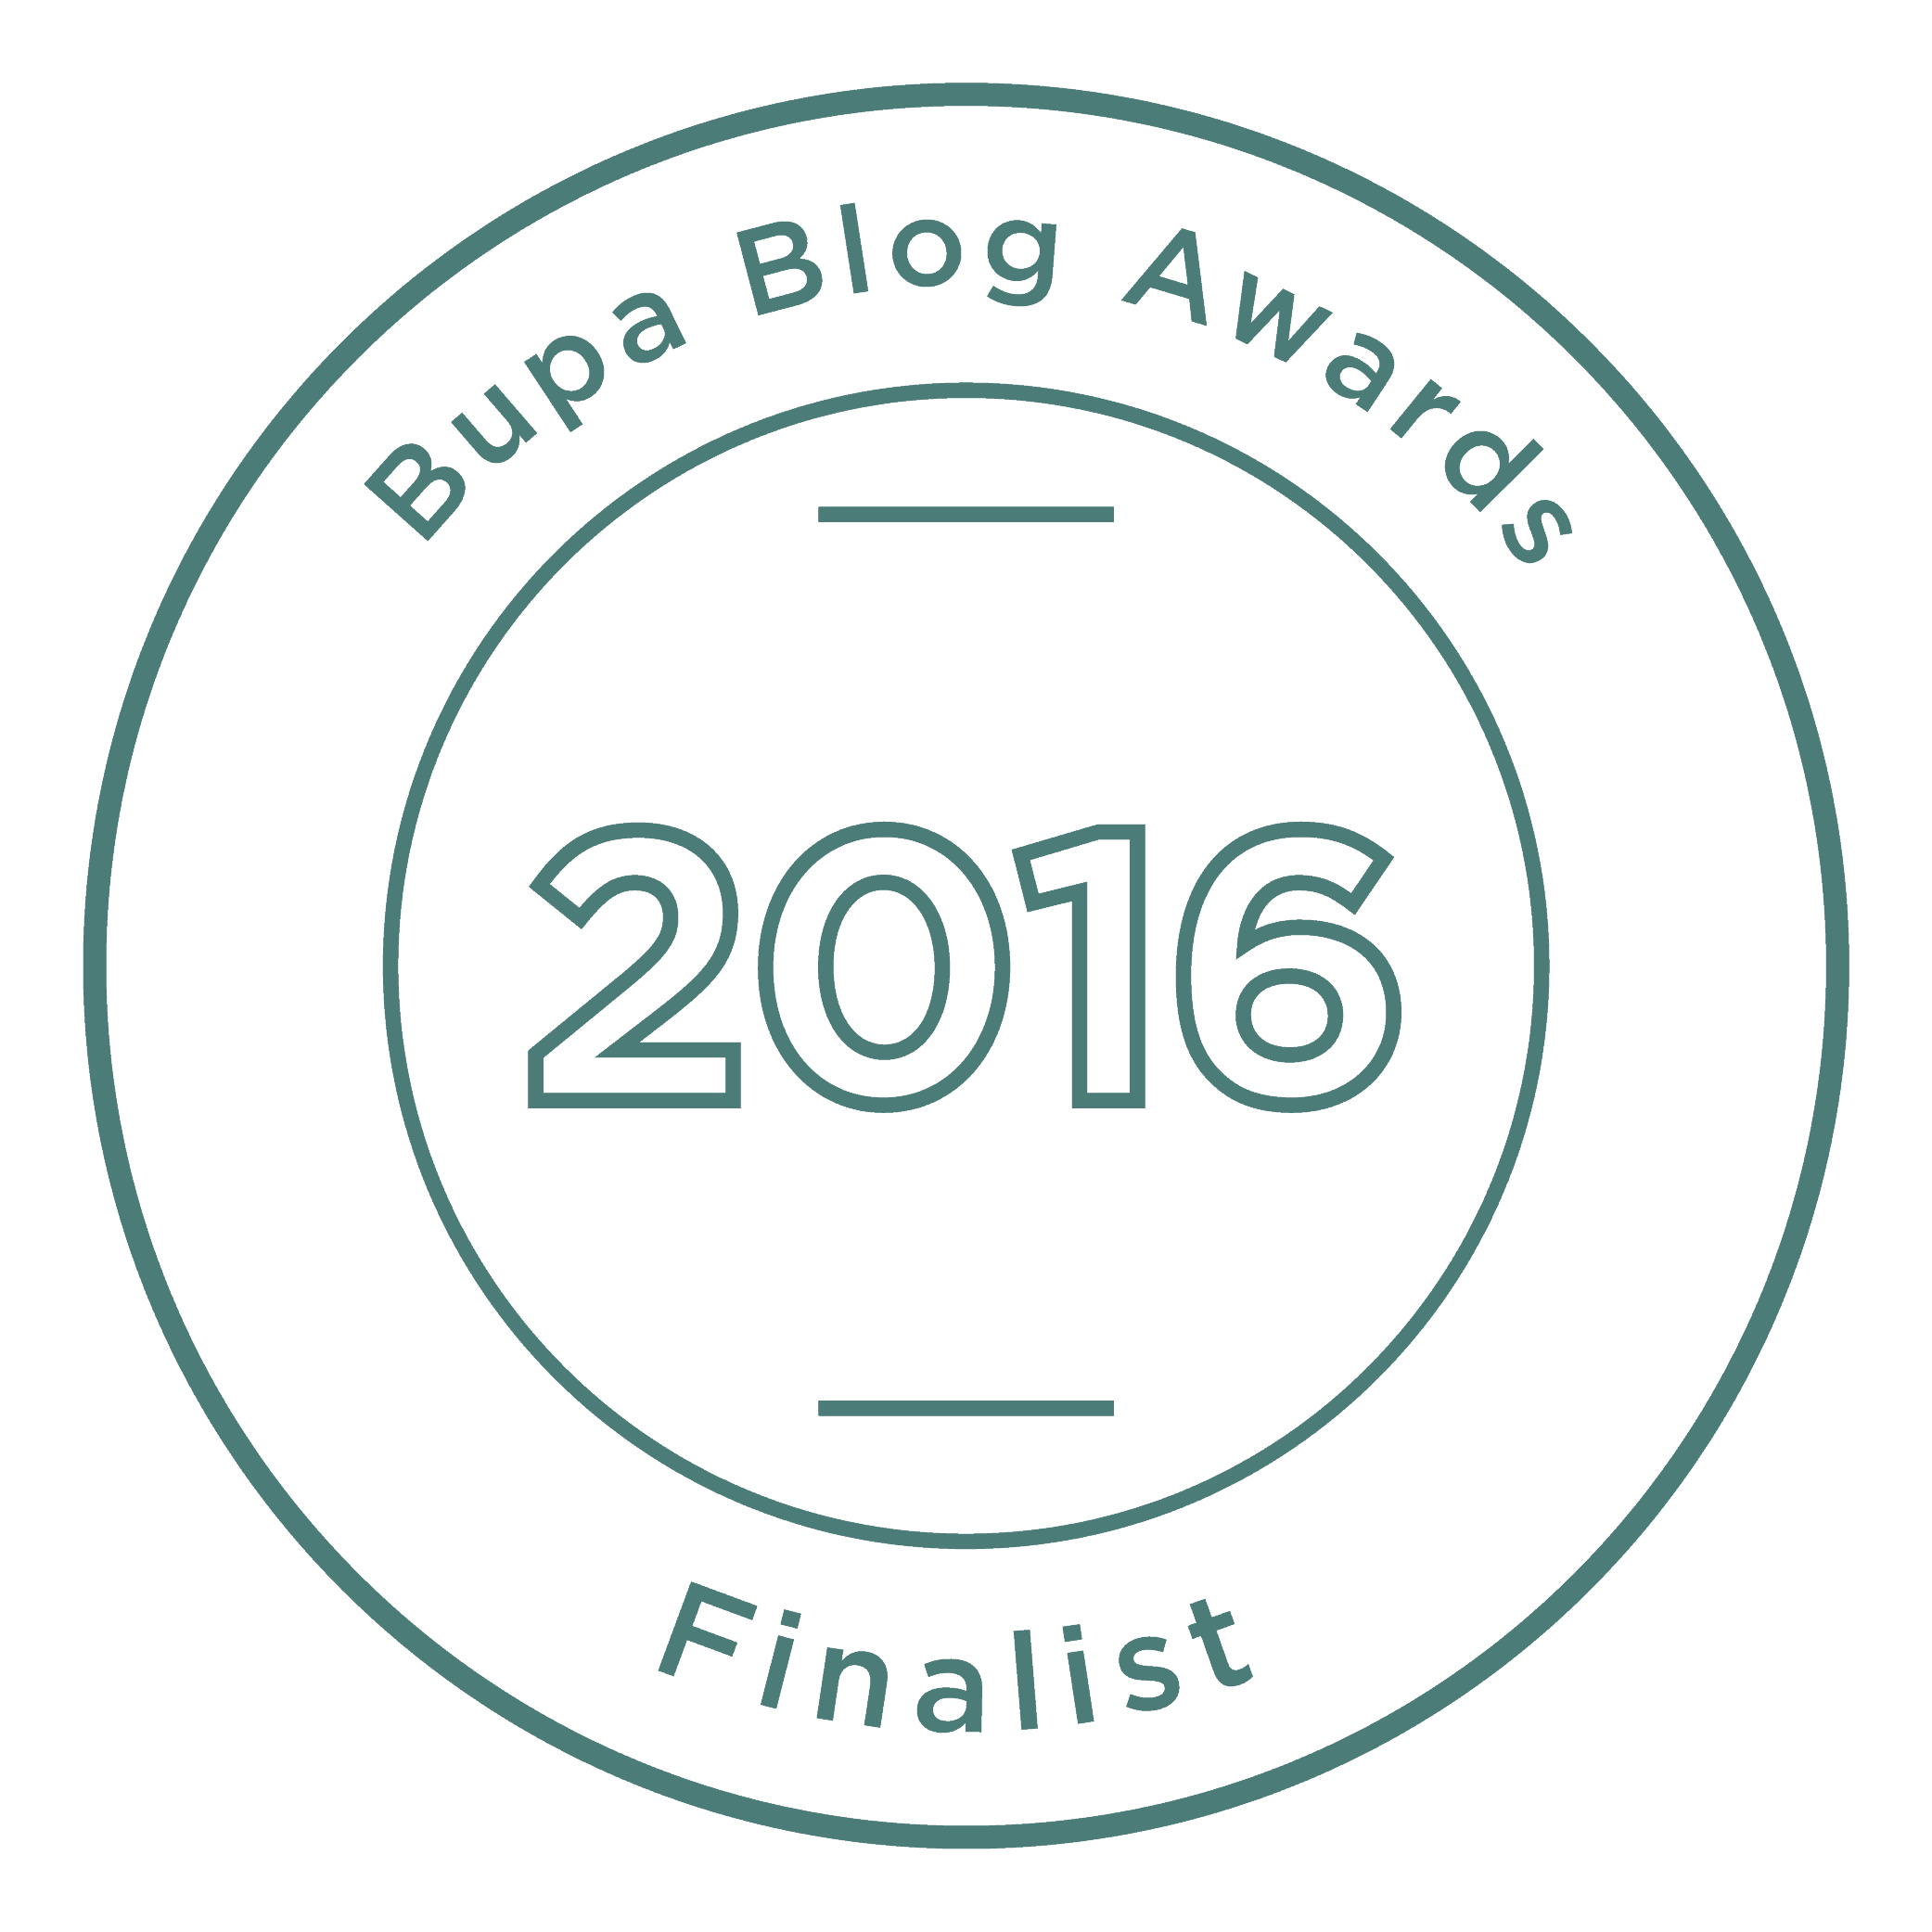 BUPA Blog Awards 2016